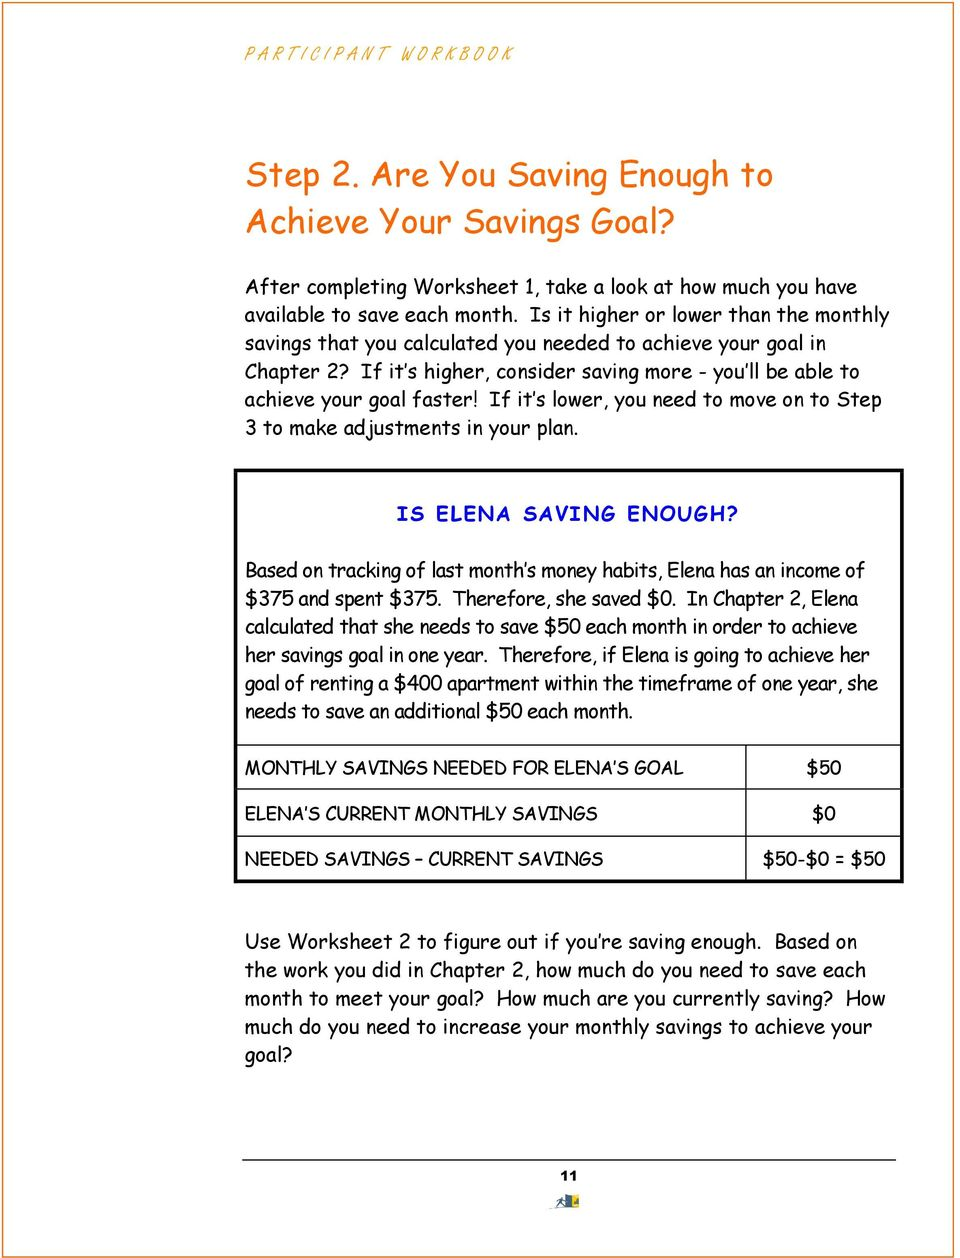 If it s lower, you need to move on to Step 3 to make adjustments in your plan. IS ELENA SAVING ENOUGH? Based on tracking of last month s money habits, Elena has an income of $375 and spent $375.